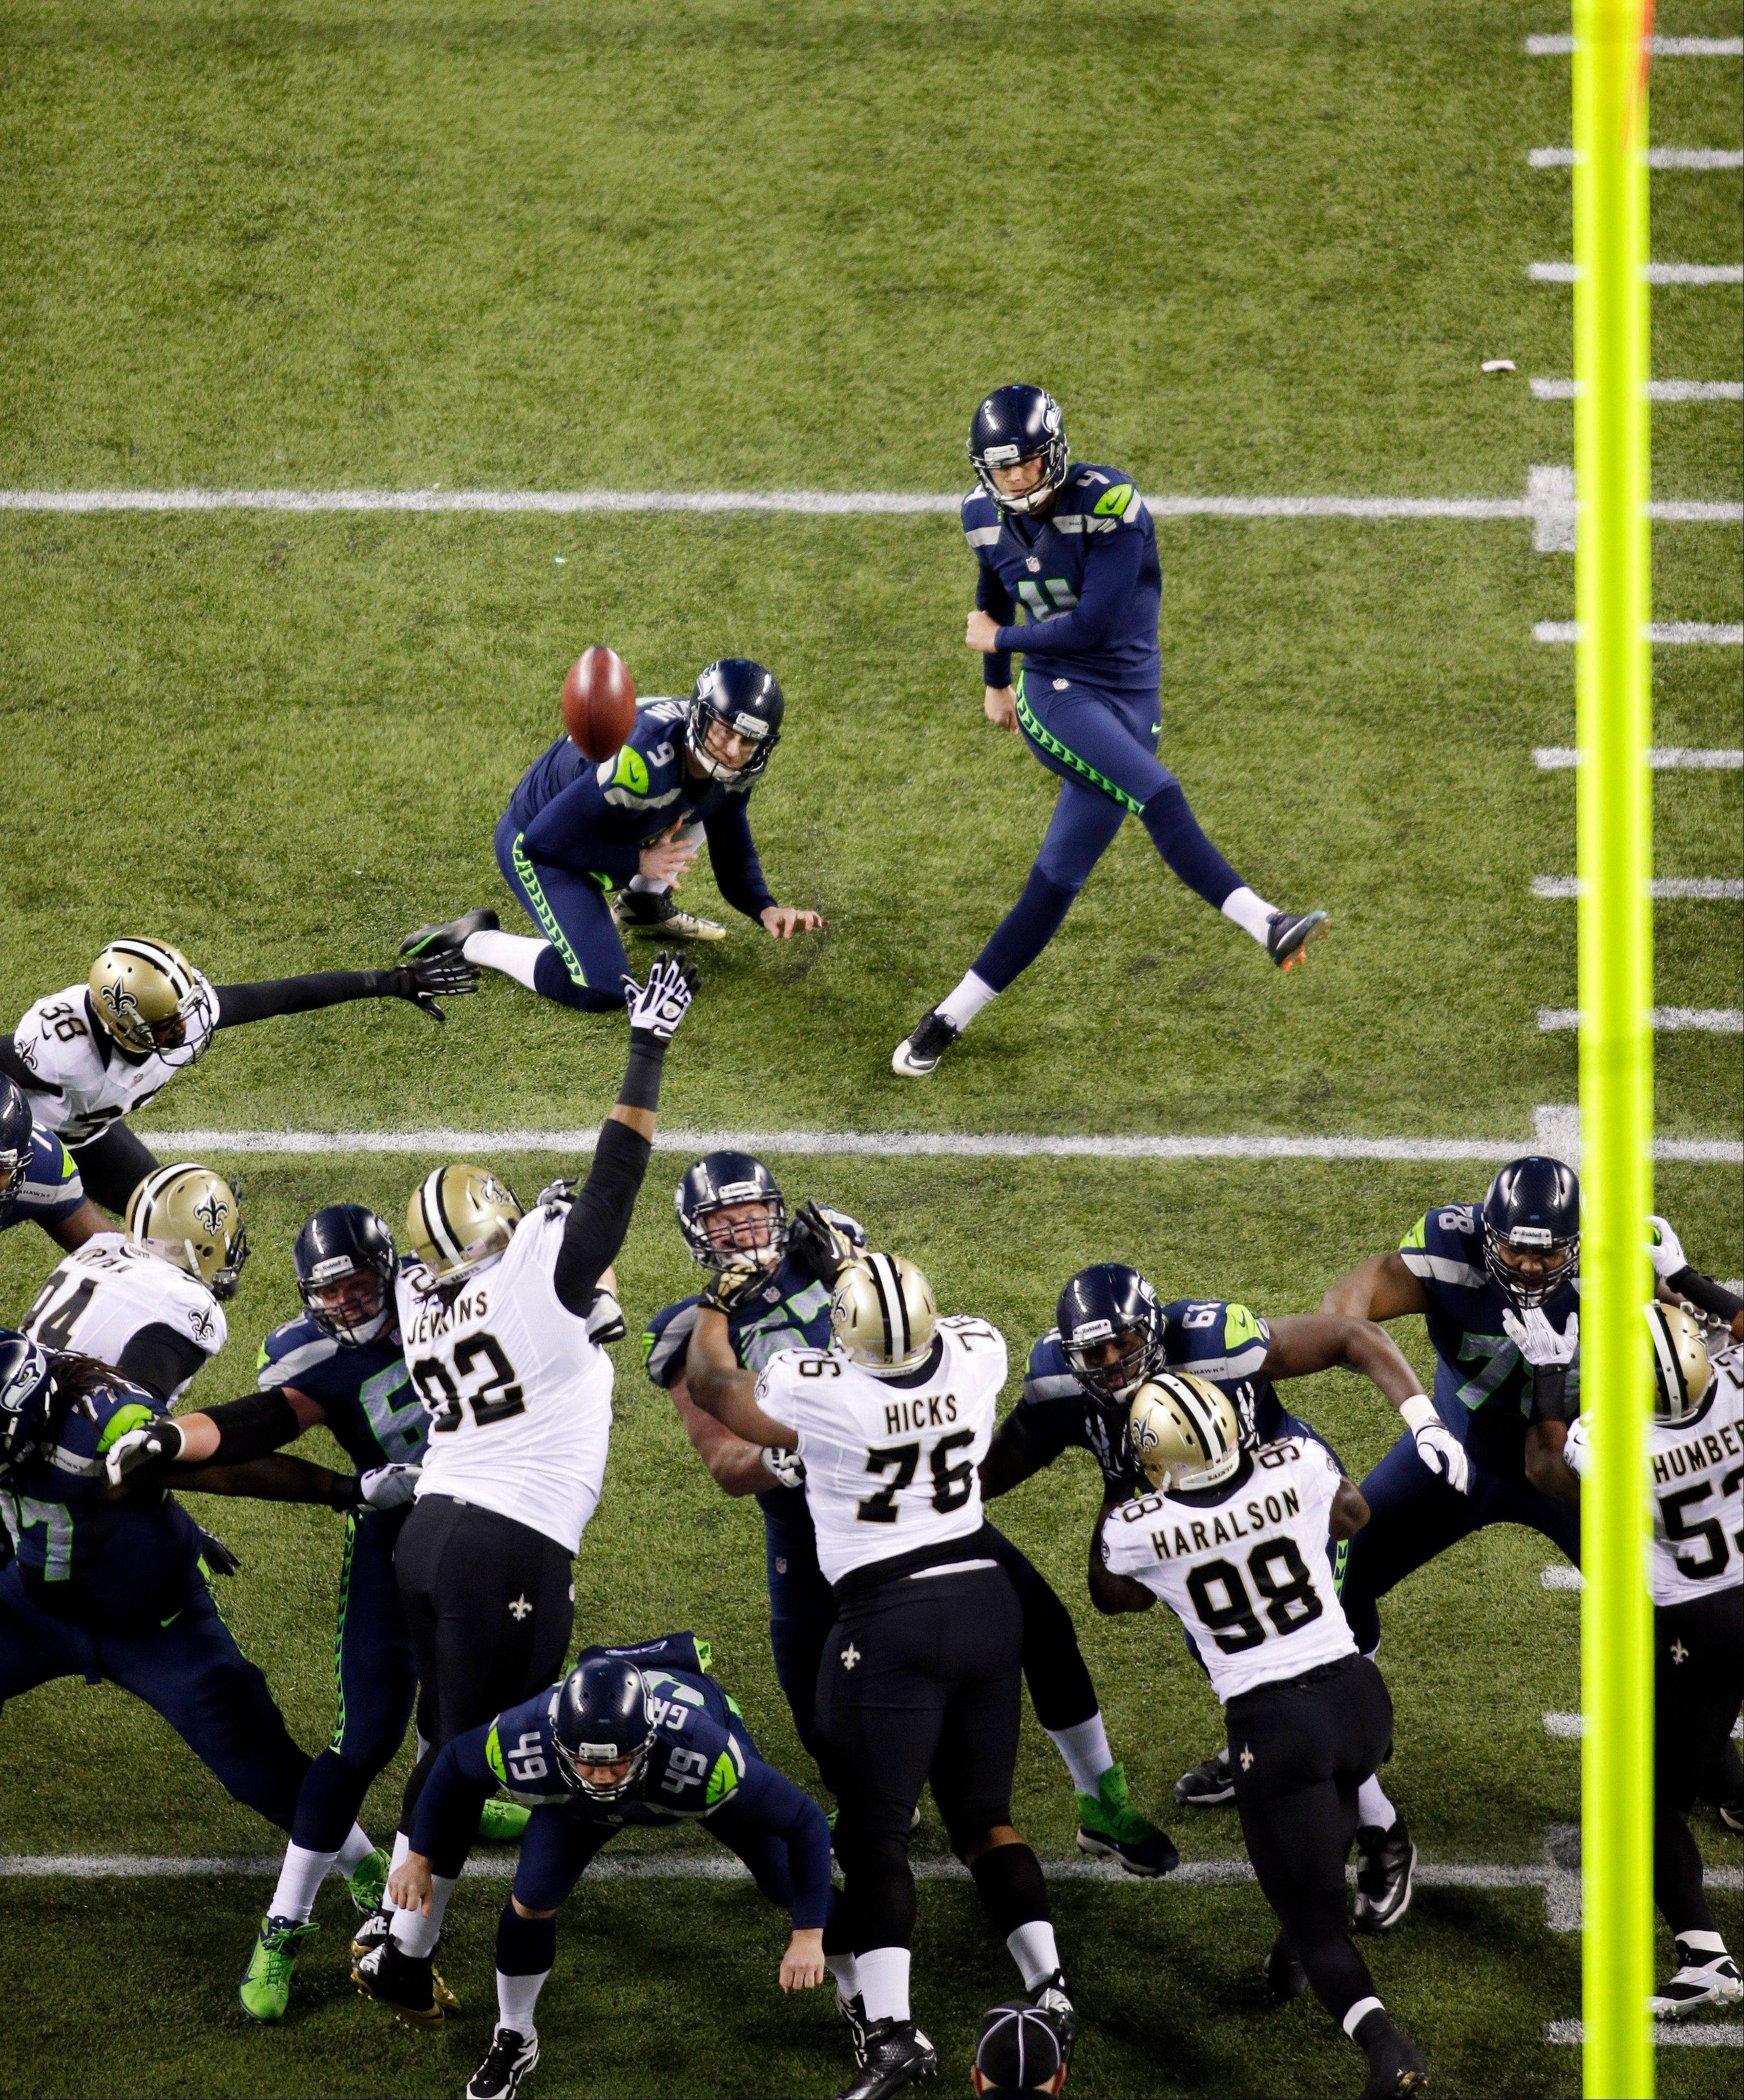 Seattle Seahawks kicker Steven Hauschka, upper right, kicks a field goal as Seahawks' Jon Ryan holds in the first half of an NFL football game Monday against the New Orleans Saints in Seattle.